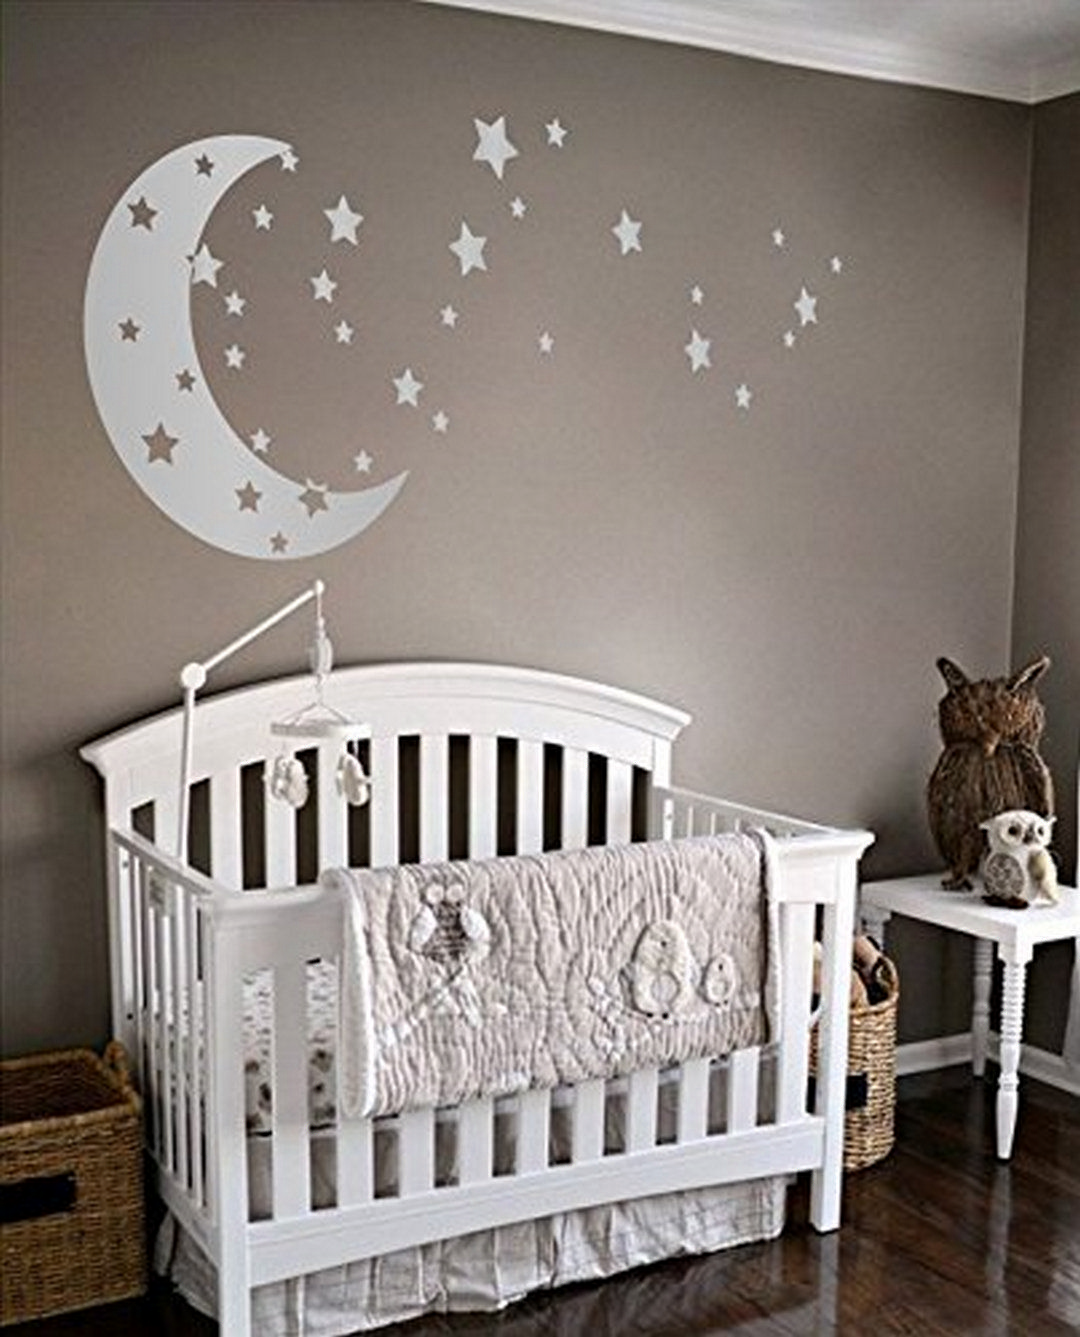 Fabulous Unisex Nursery Decorating Ideas: 38 Dazzling Moon And Stars Nursery Decoration Ideas